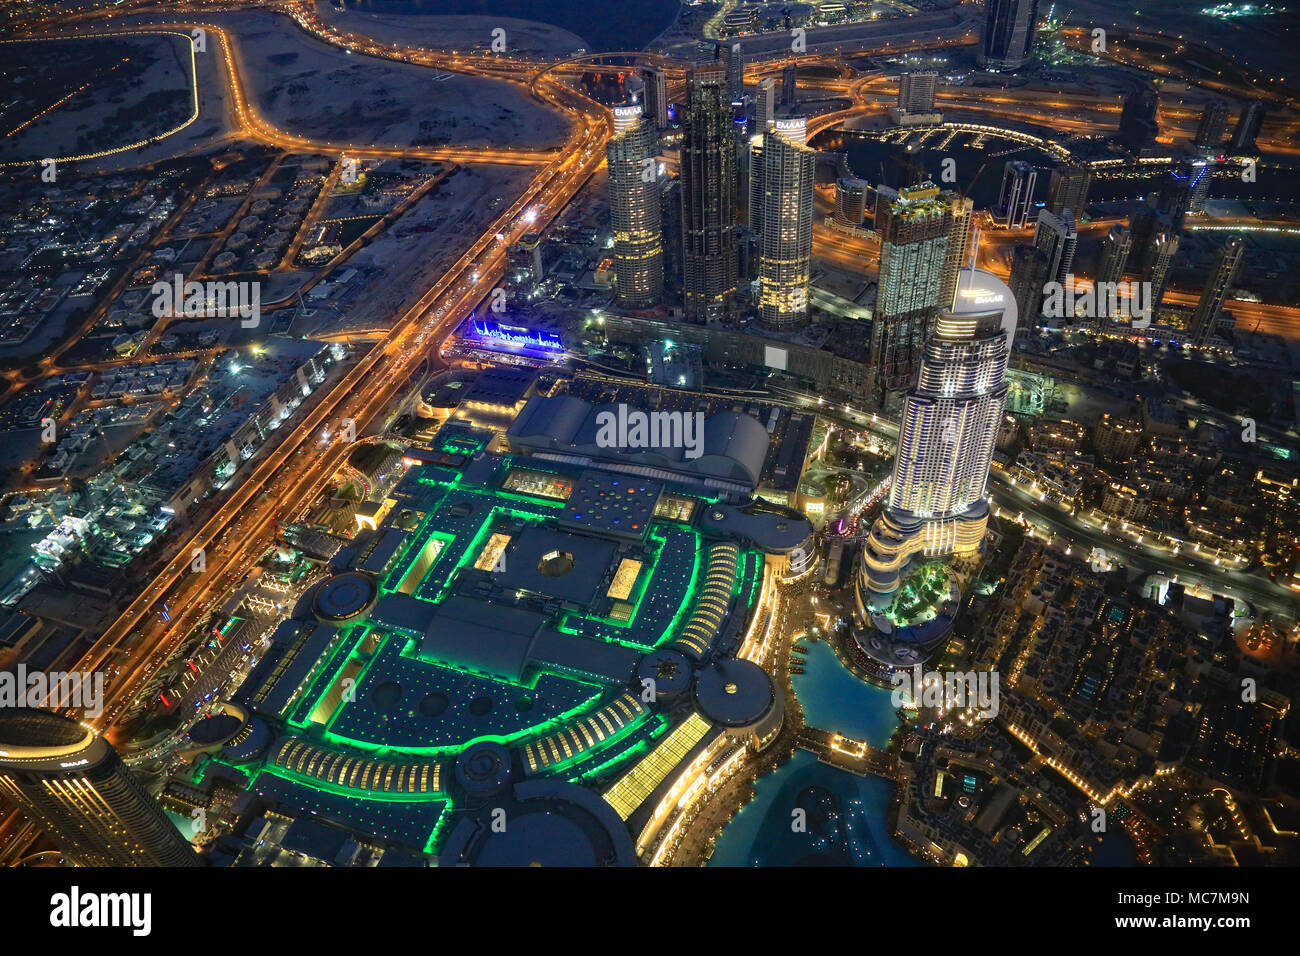 Dubai, the largest city in the United Arab Emirates. Oil was discovered in 1966 which accelerated growth. Today only 5% of revenue comes from oil. - Stock Image